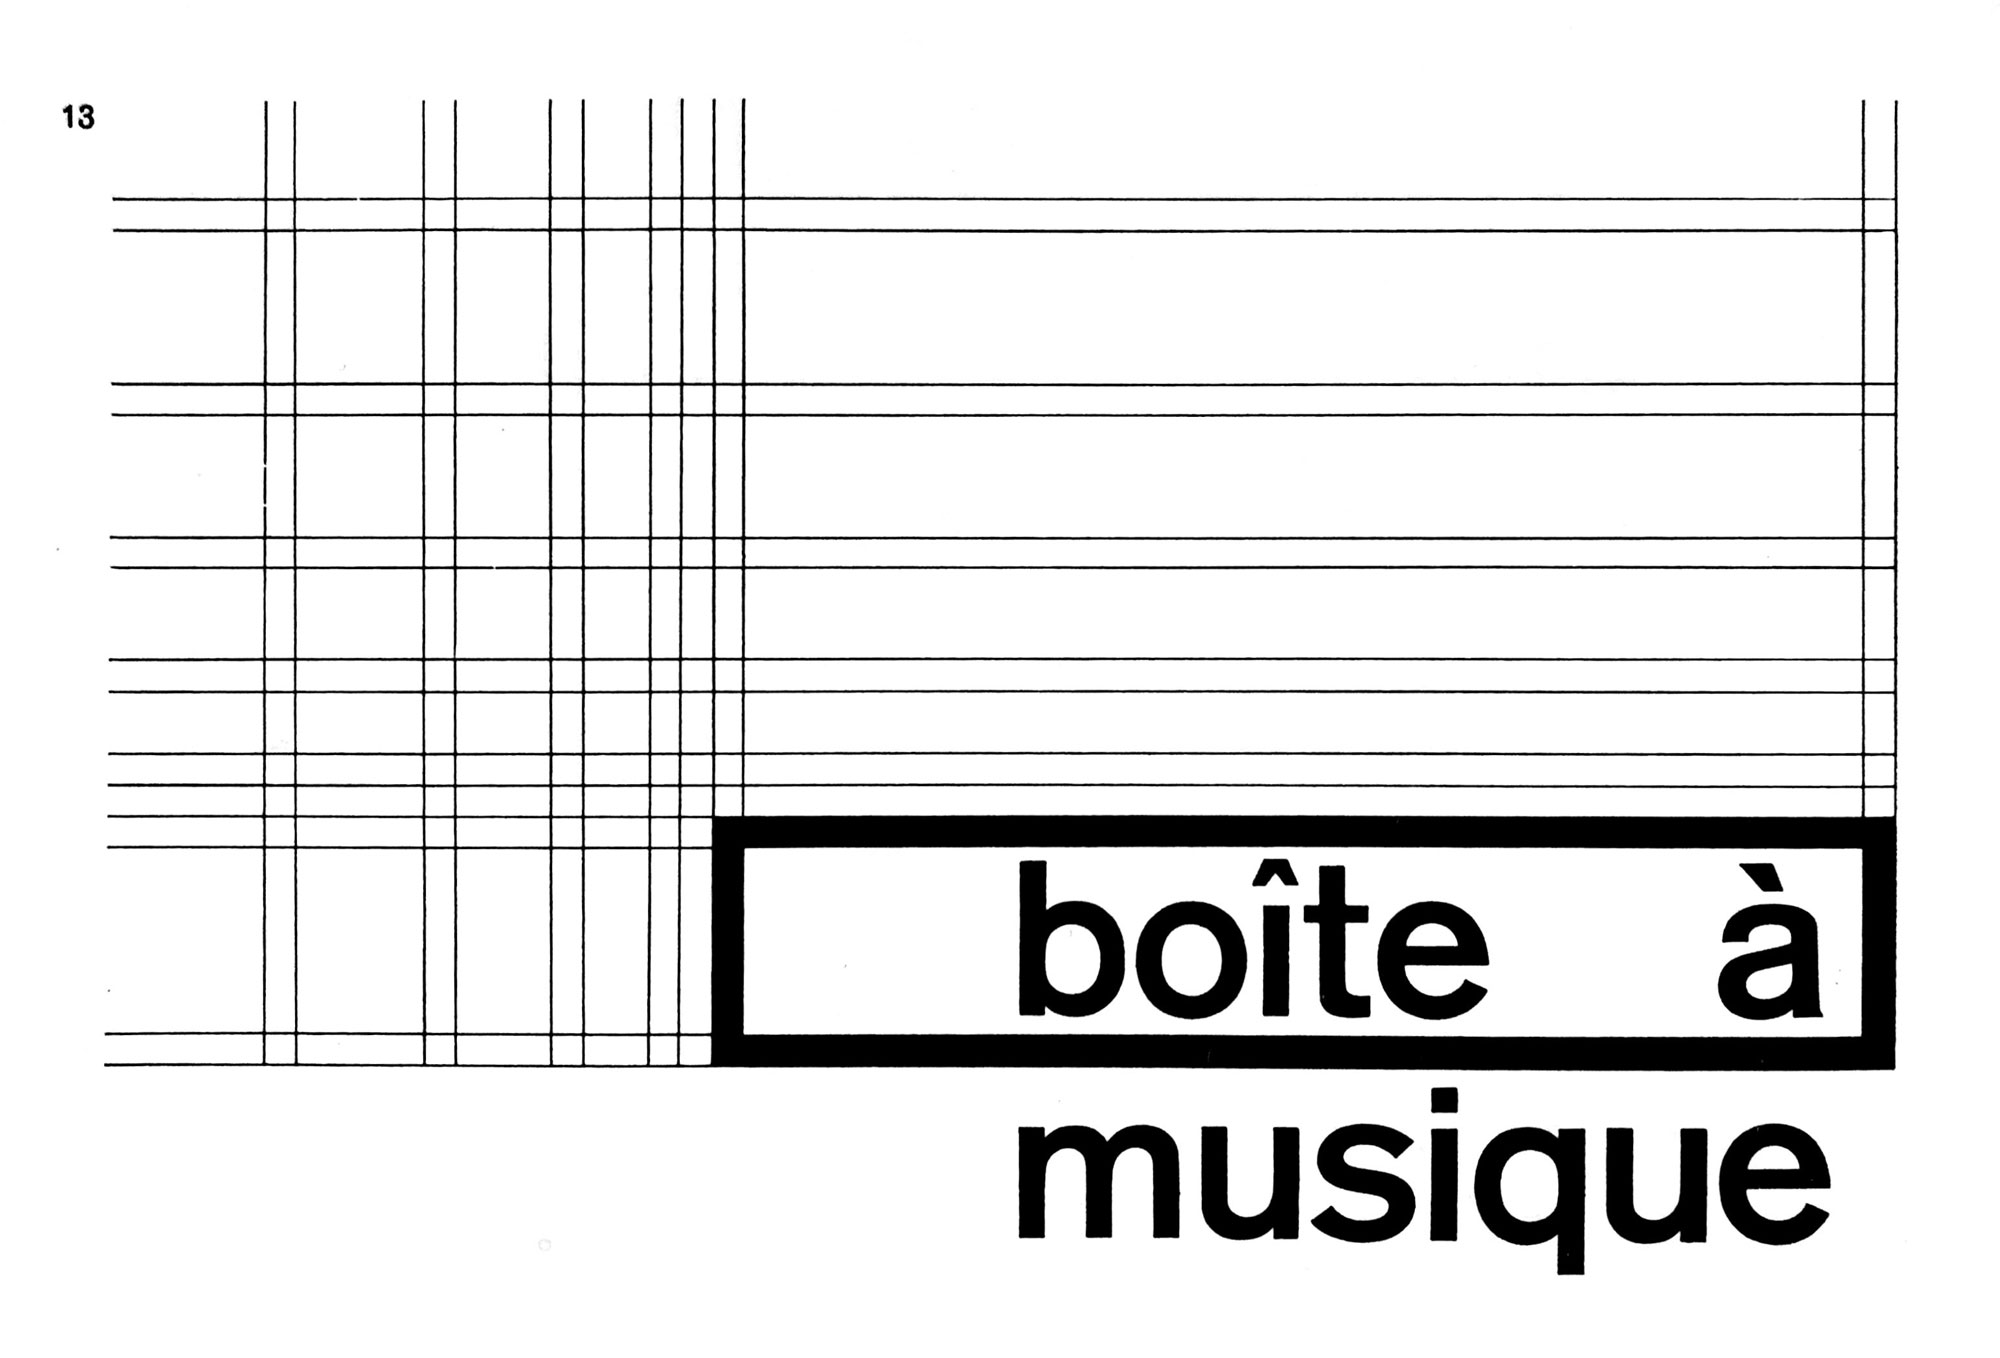 Boîte à musique typeset in a medium sans serif surrounded by a rectangle with criss-crossed grid guides showing the various layout options